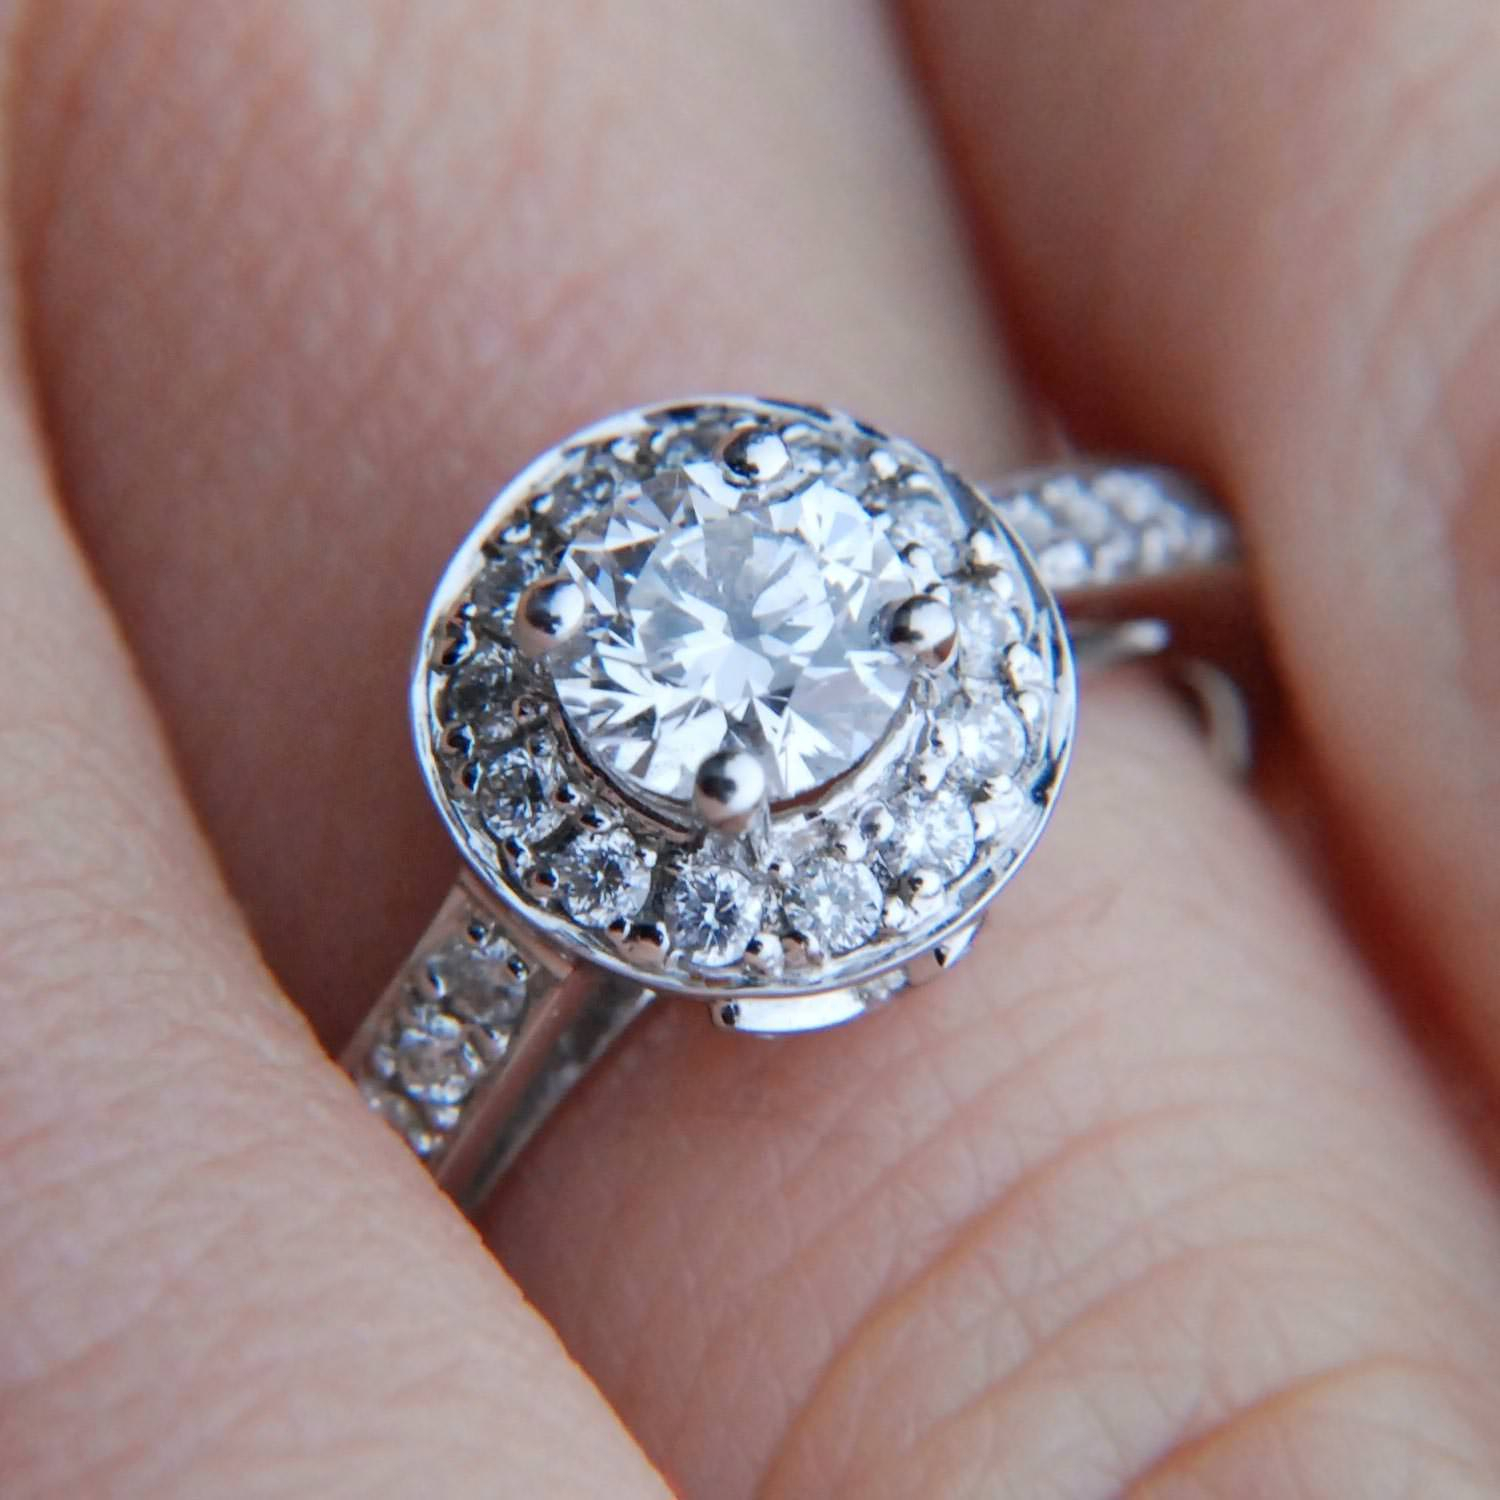 What Is A Halo Ring? | Jewelry Wise Intended For Latest Diamond Frame Five Stone Anniversary Bands In White Gold (View 24 of 25)